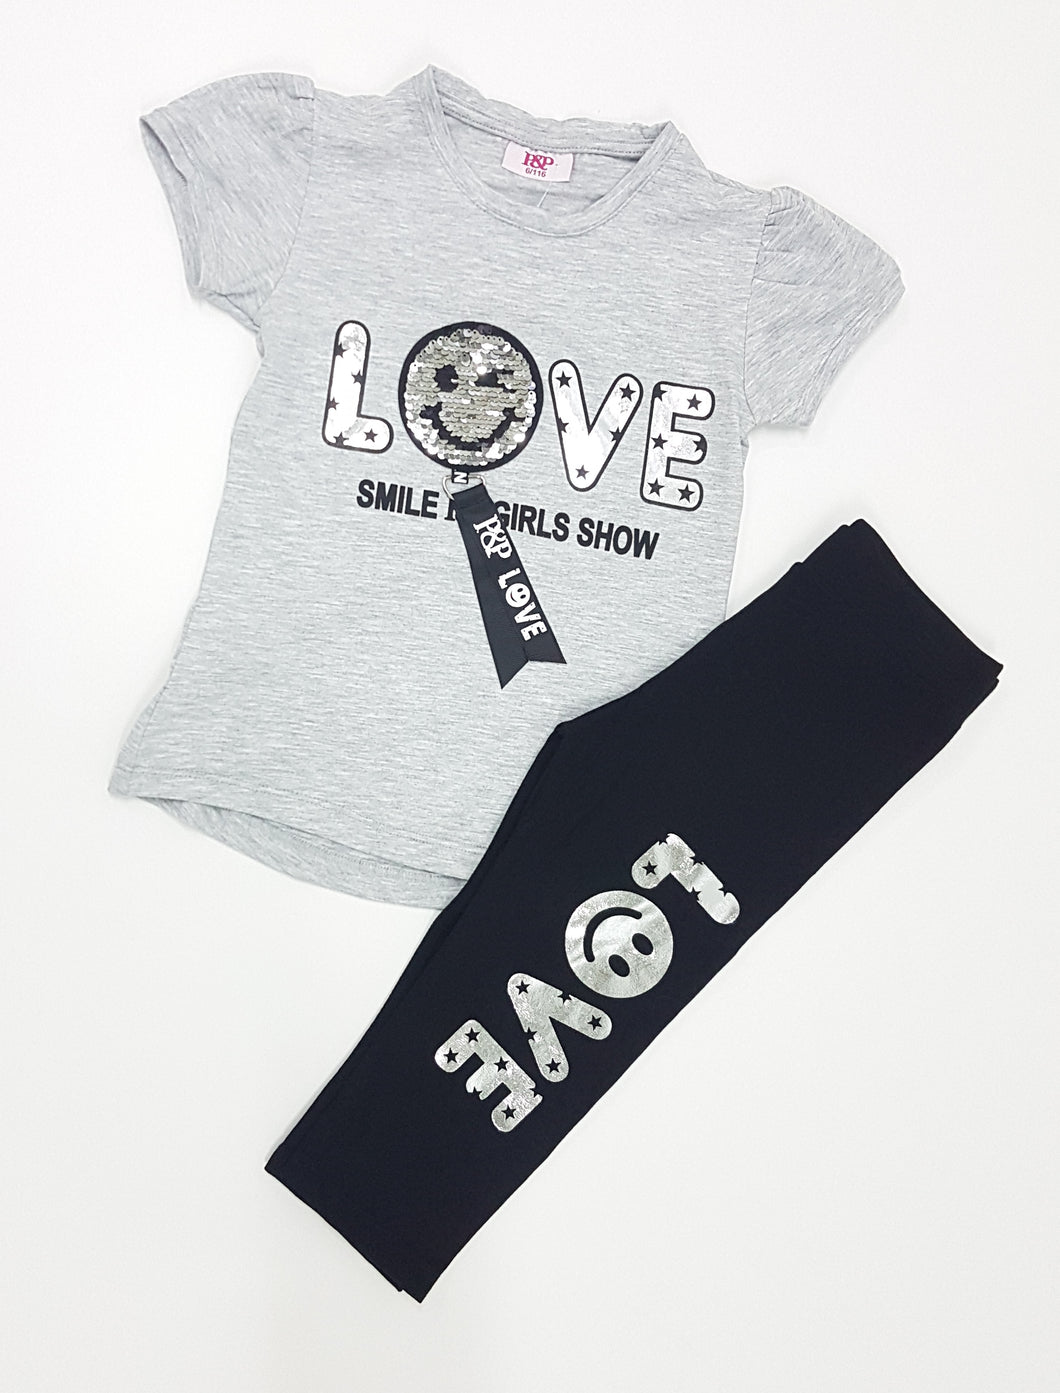 Grey top with silver smiley face and black trouser